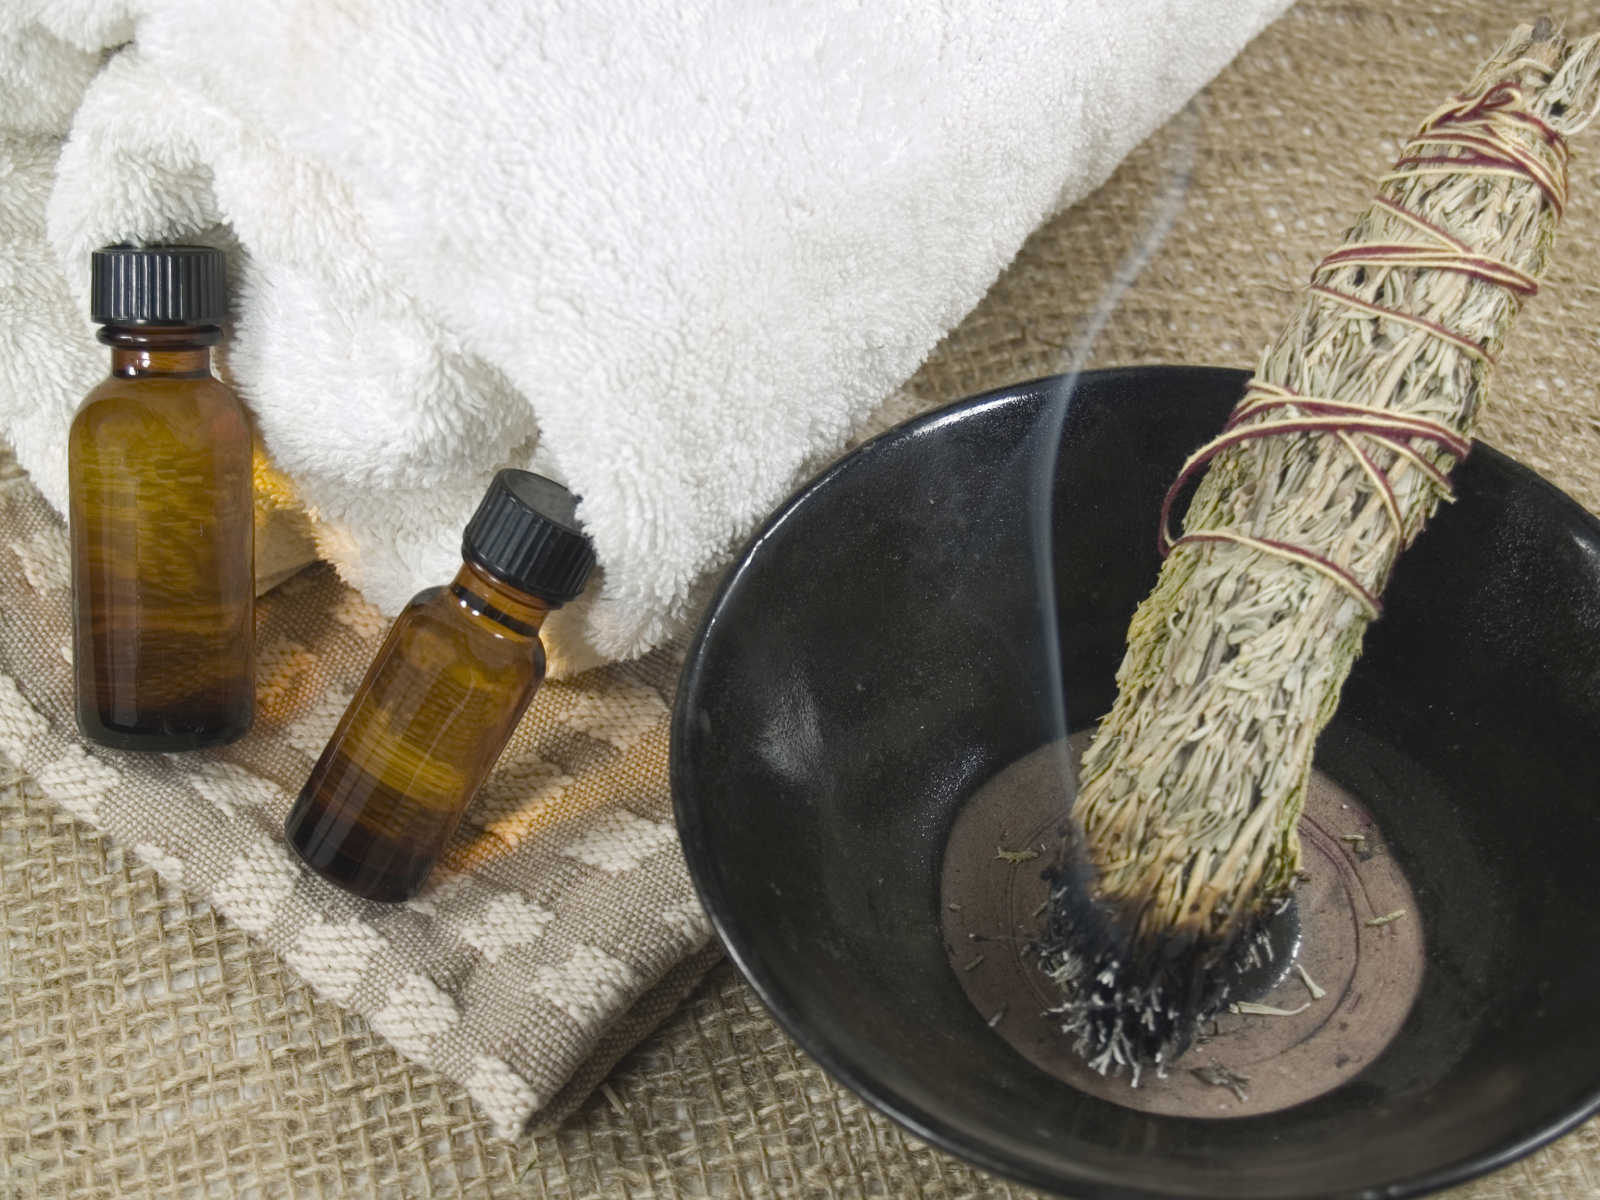 Regular smudging helps rejuvenate your body, your surroundings, and even your possessions.